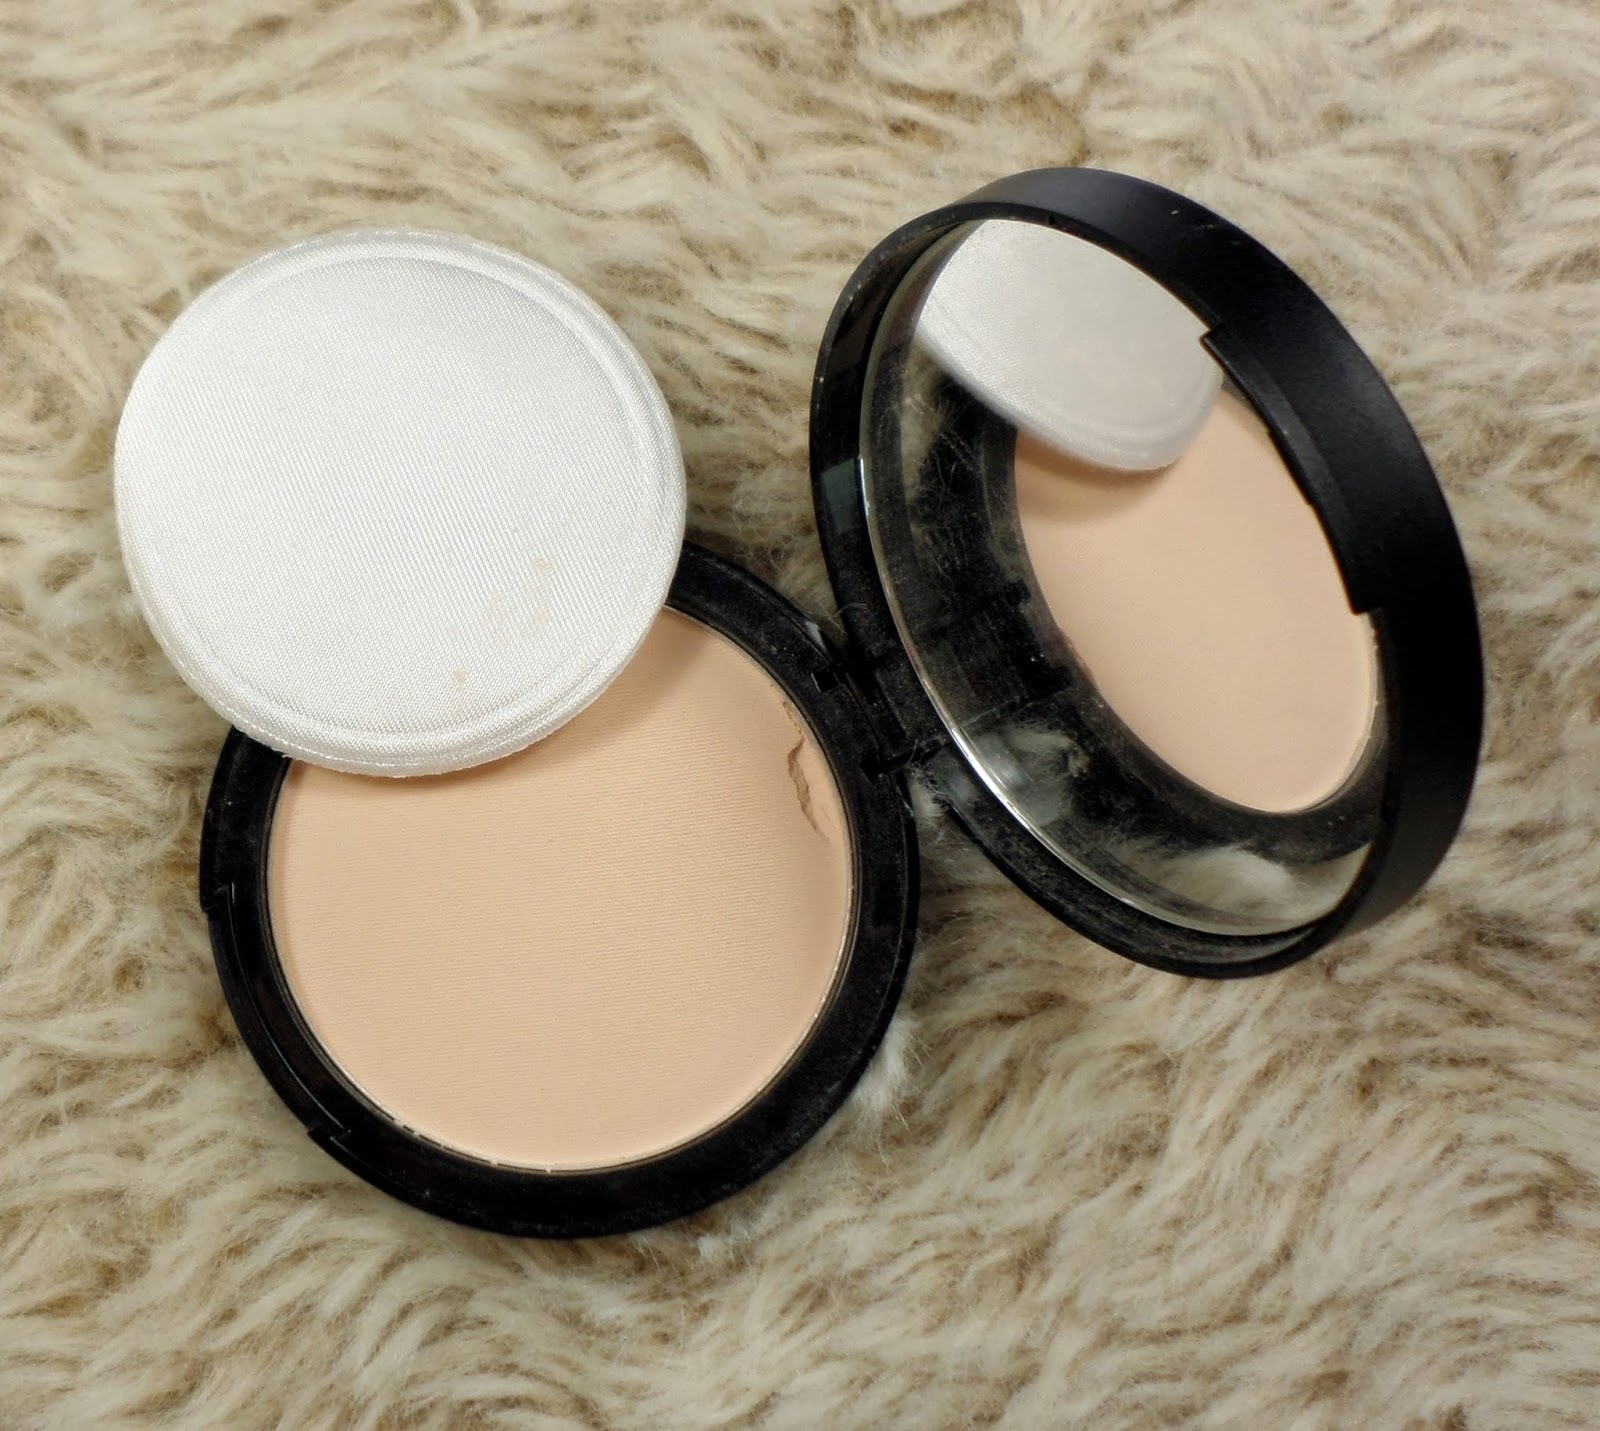 Seventeen Miracle Matte Pressed Powder in Ivory Porcelain